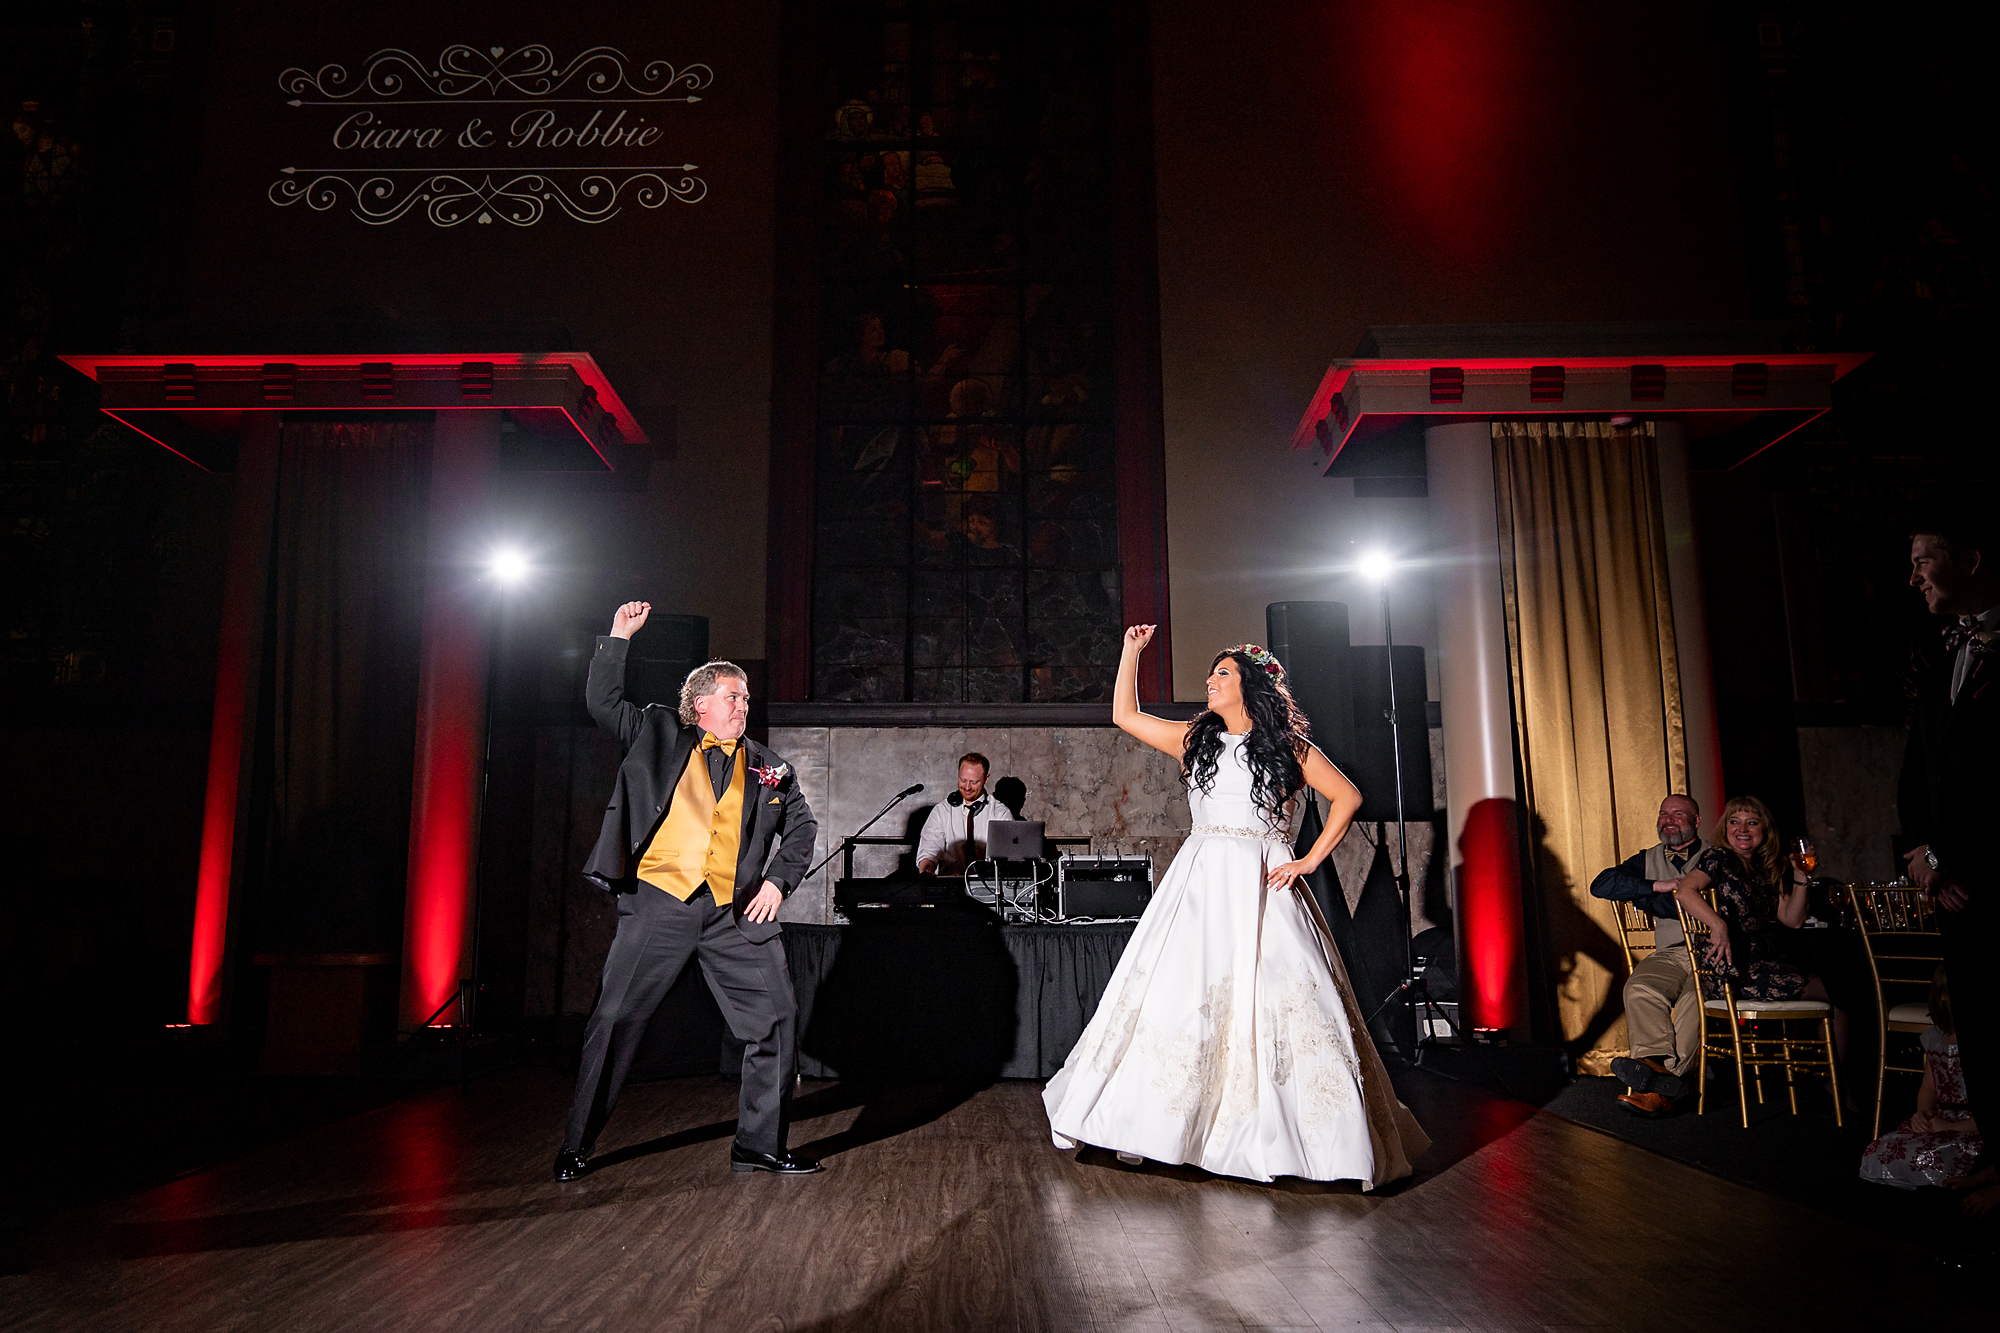 The-Bell-Event-Centre-Wedding-Photography-28.jpg